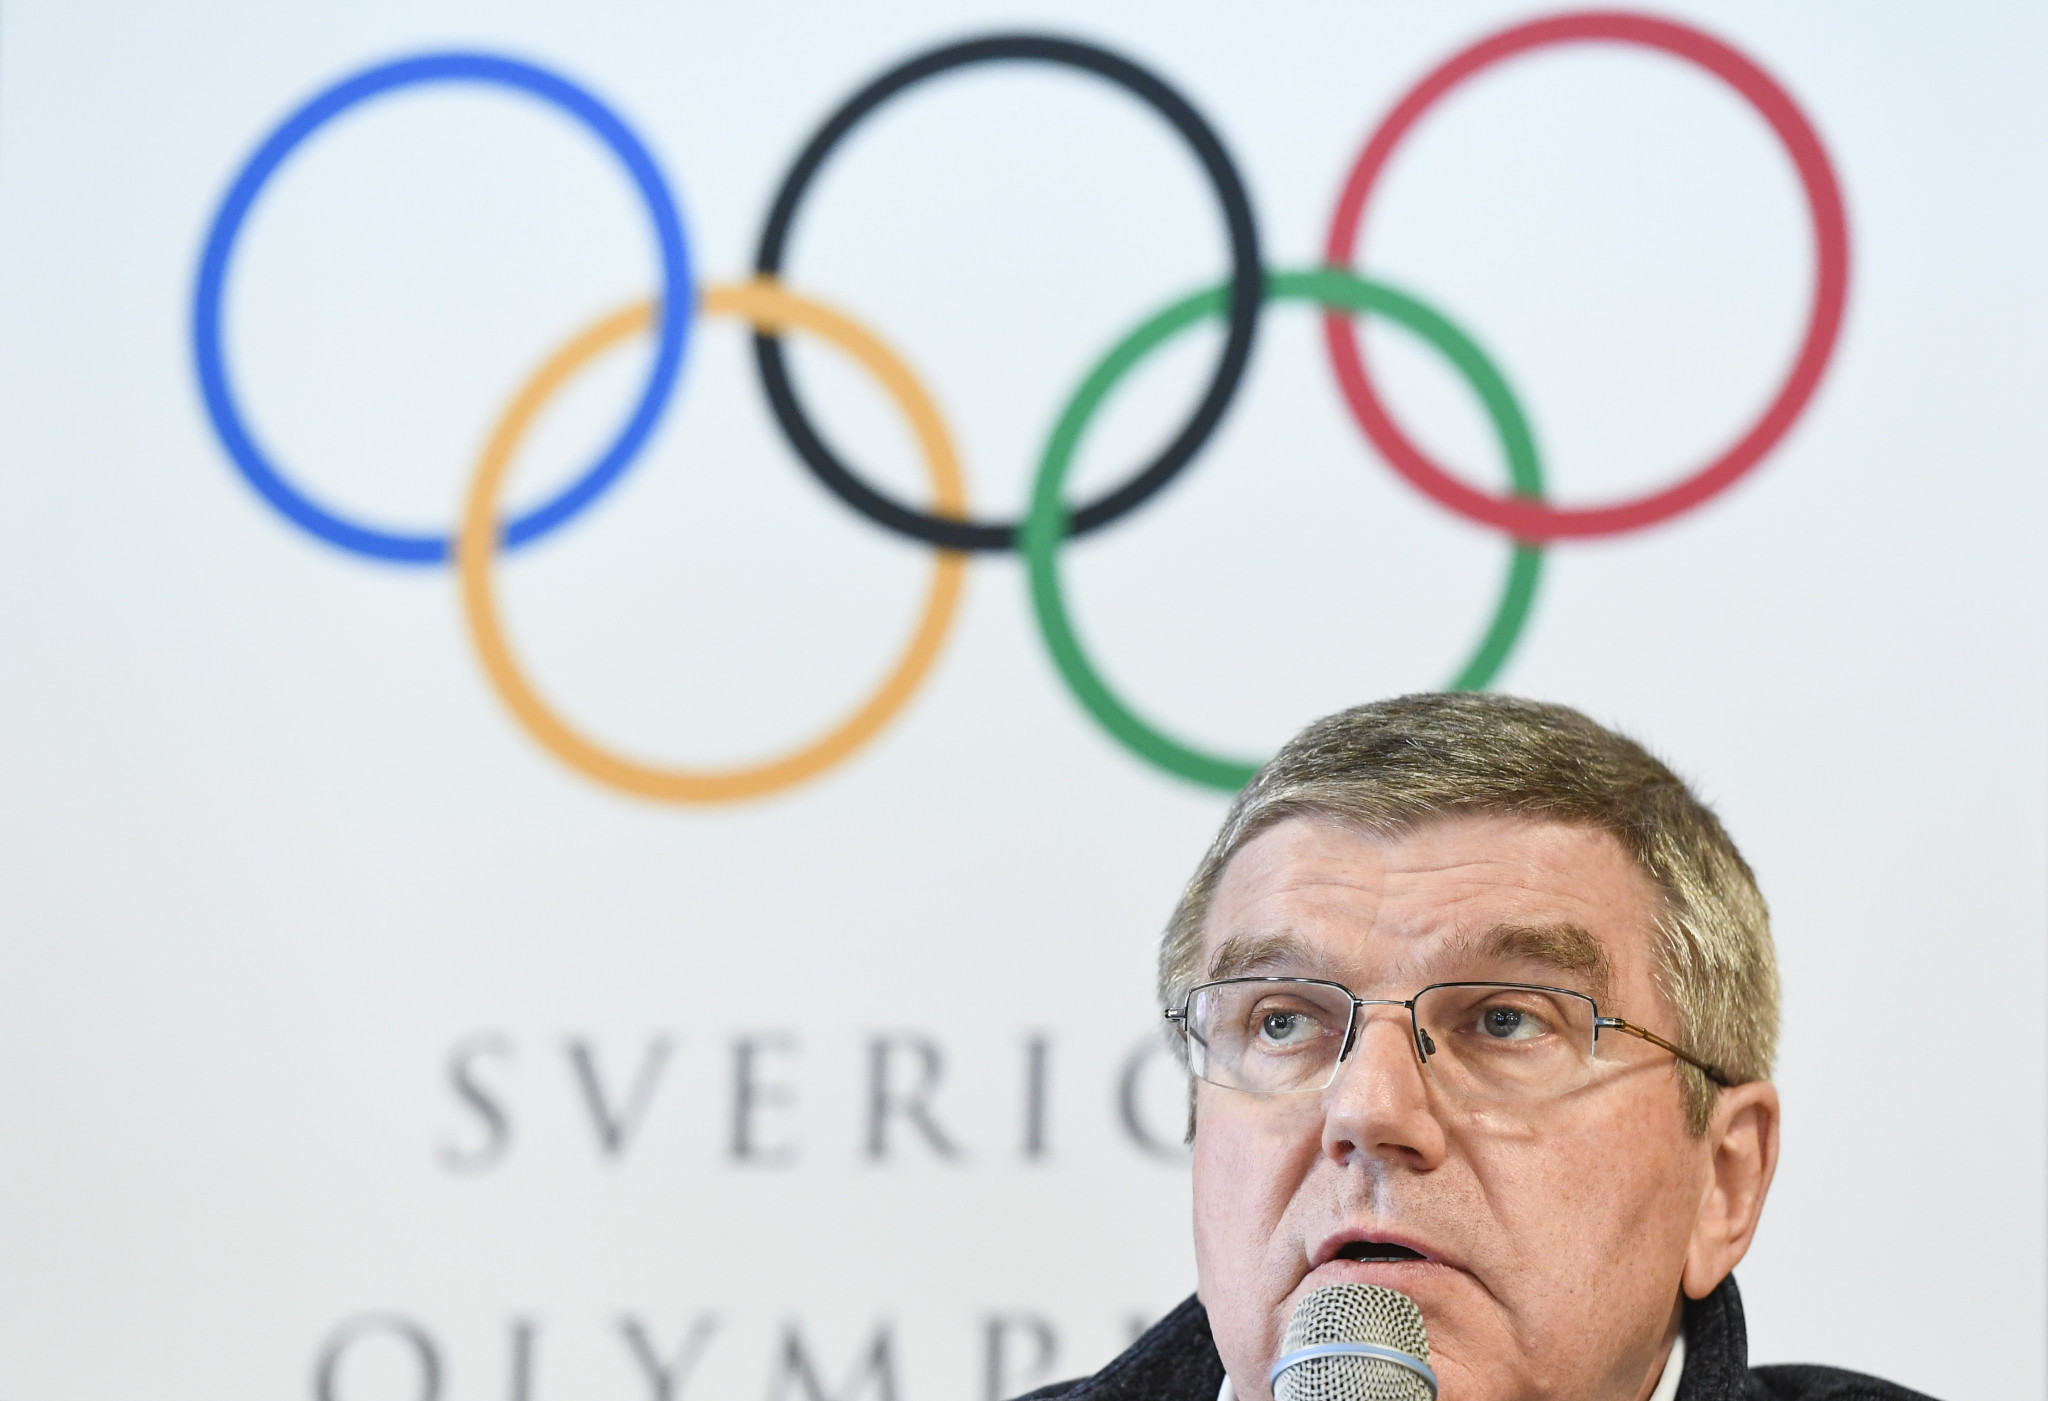 Thomas Bach has reiterated the IOC stance of political neutrality ©Getty Images